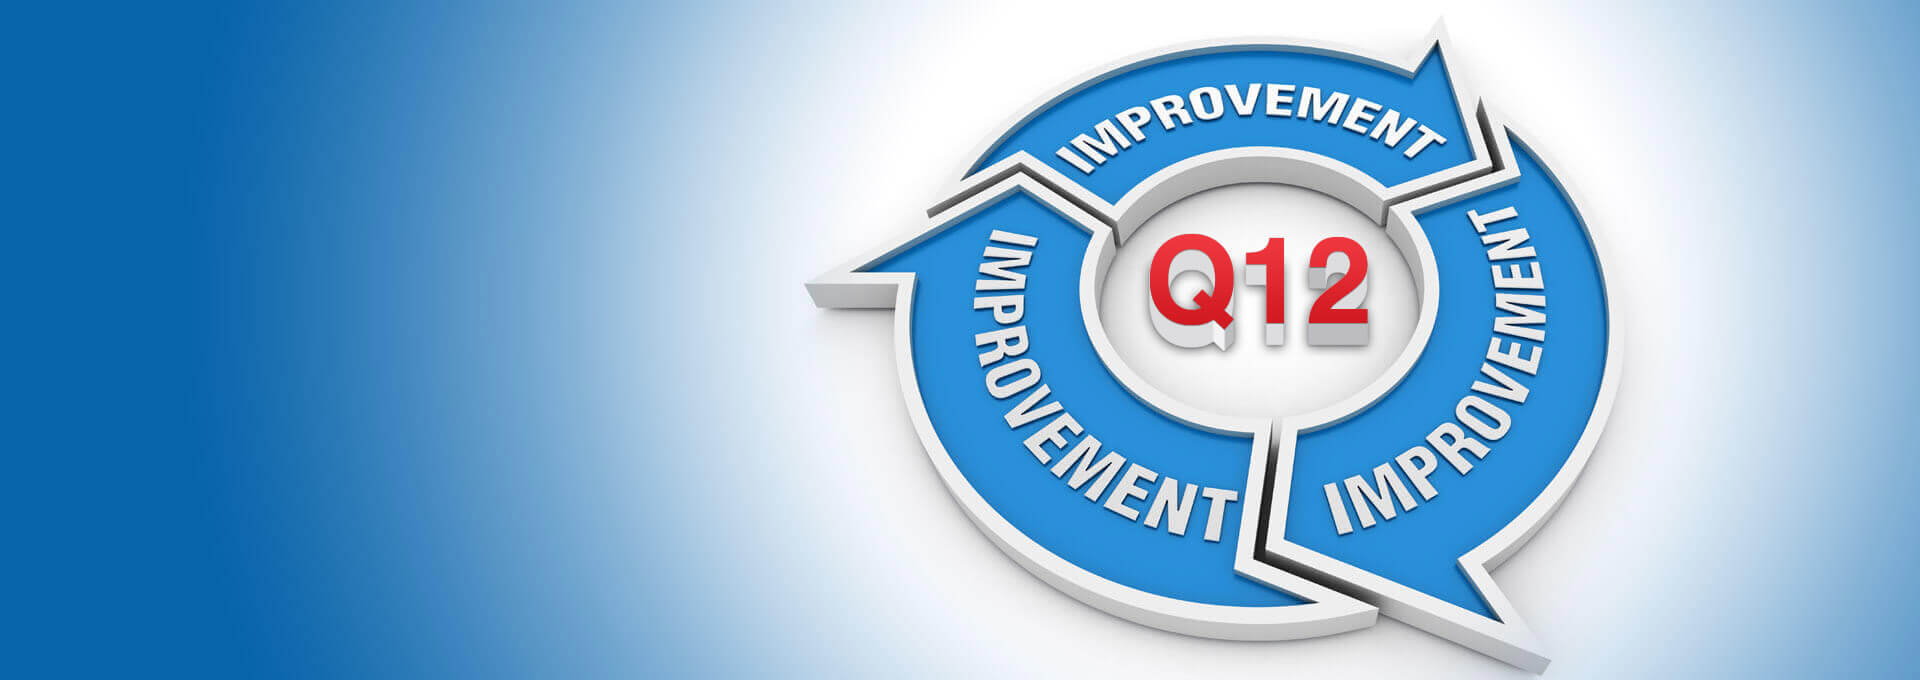 FDA Shares Views on ICH Q12, Continuous Improvement and Innovation